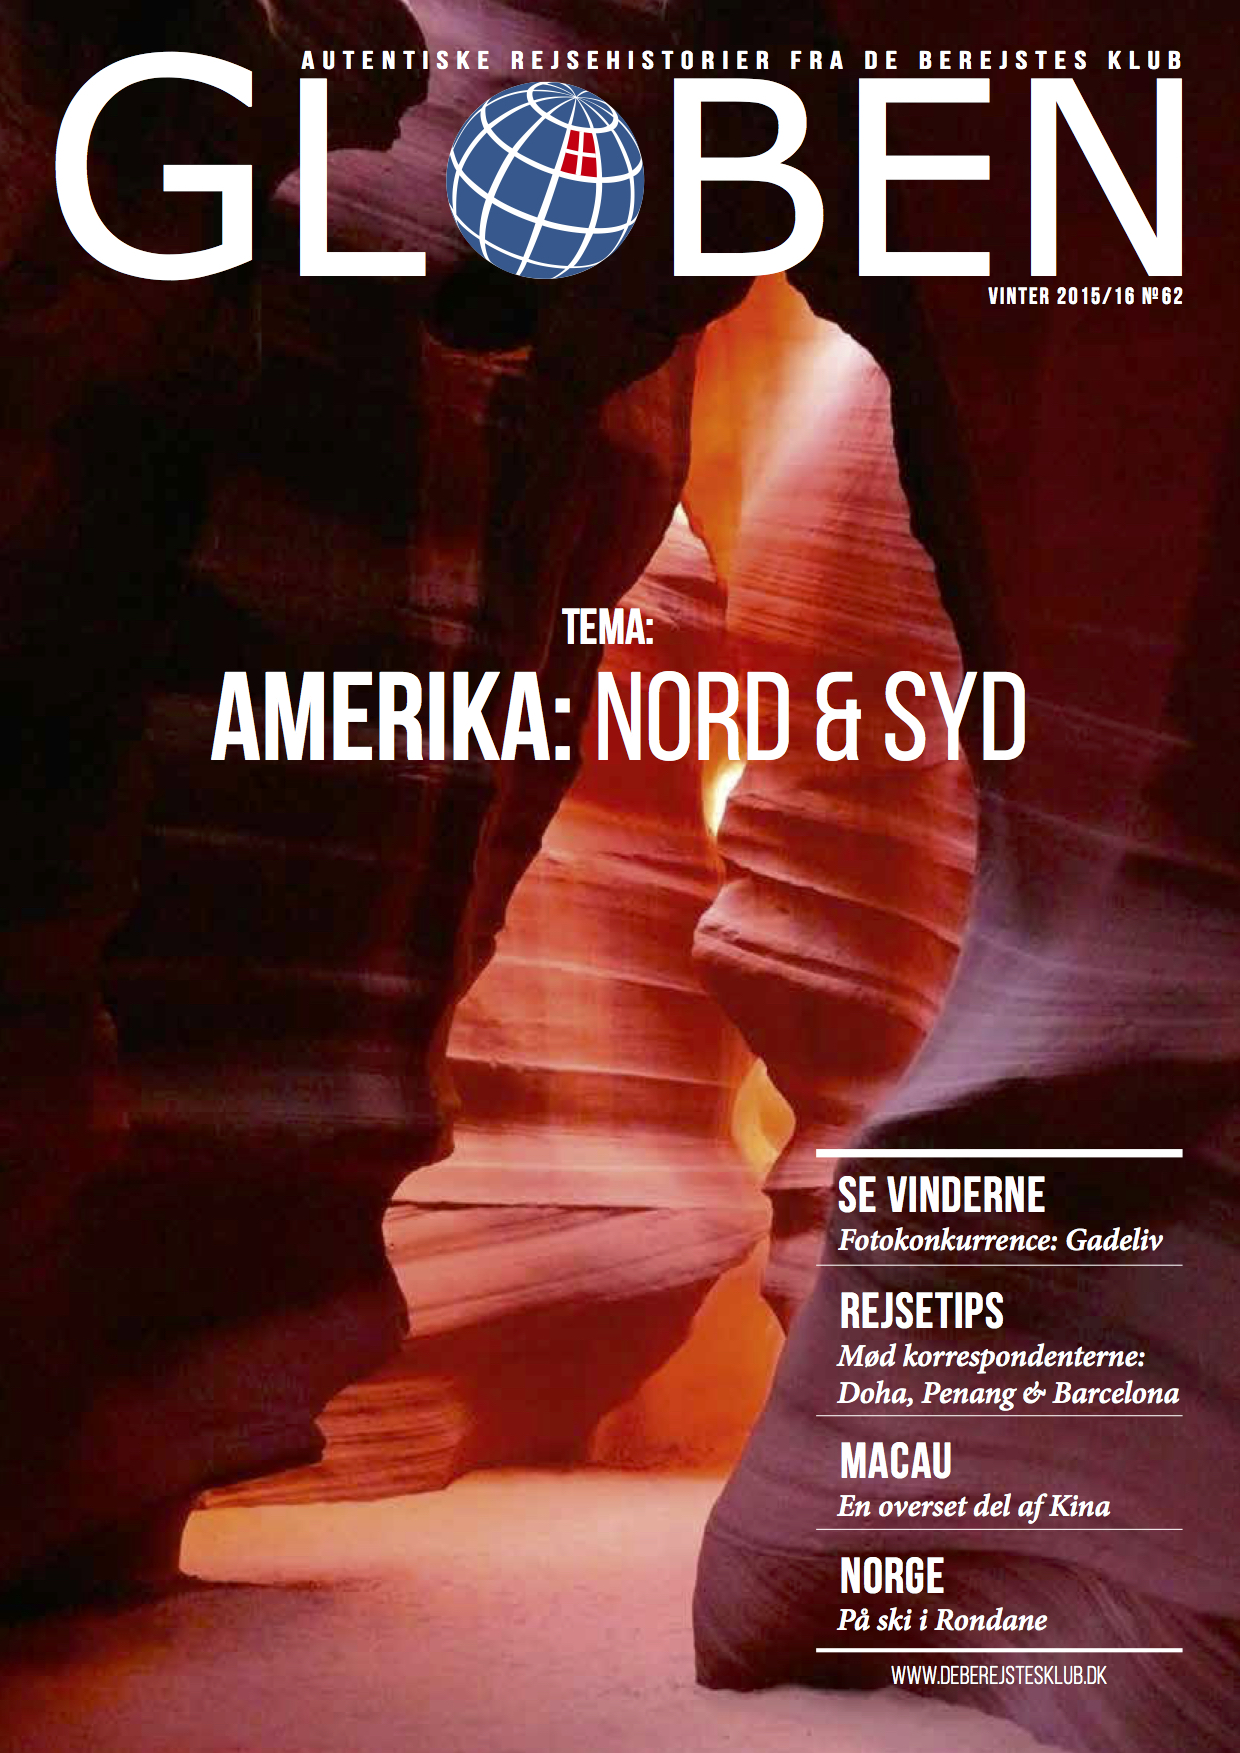 Issue 62: Amerika: Nord & Syd   America: North & South is the theme for this issue. The stories take us from USA,Mexico, Cayman Islands, Colombia, Ecuador, down to Argentina. Download the issue  here .